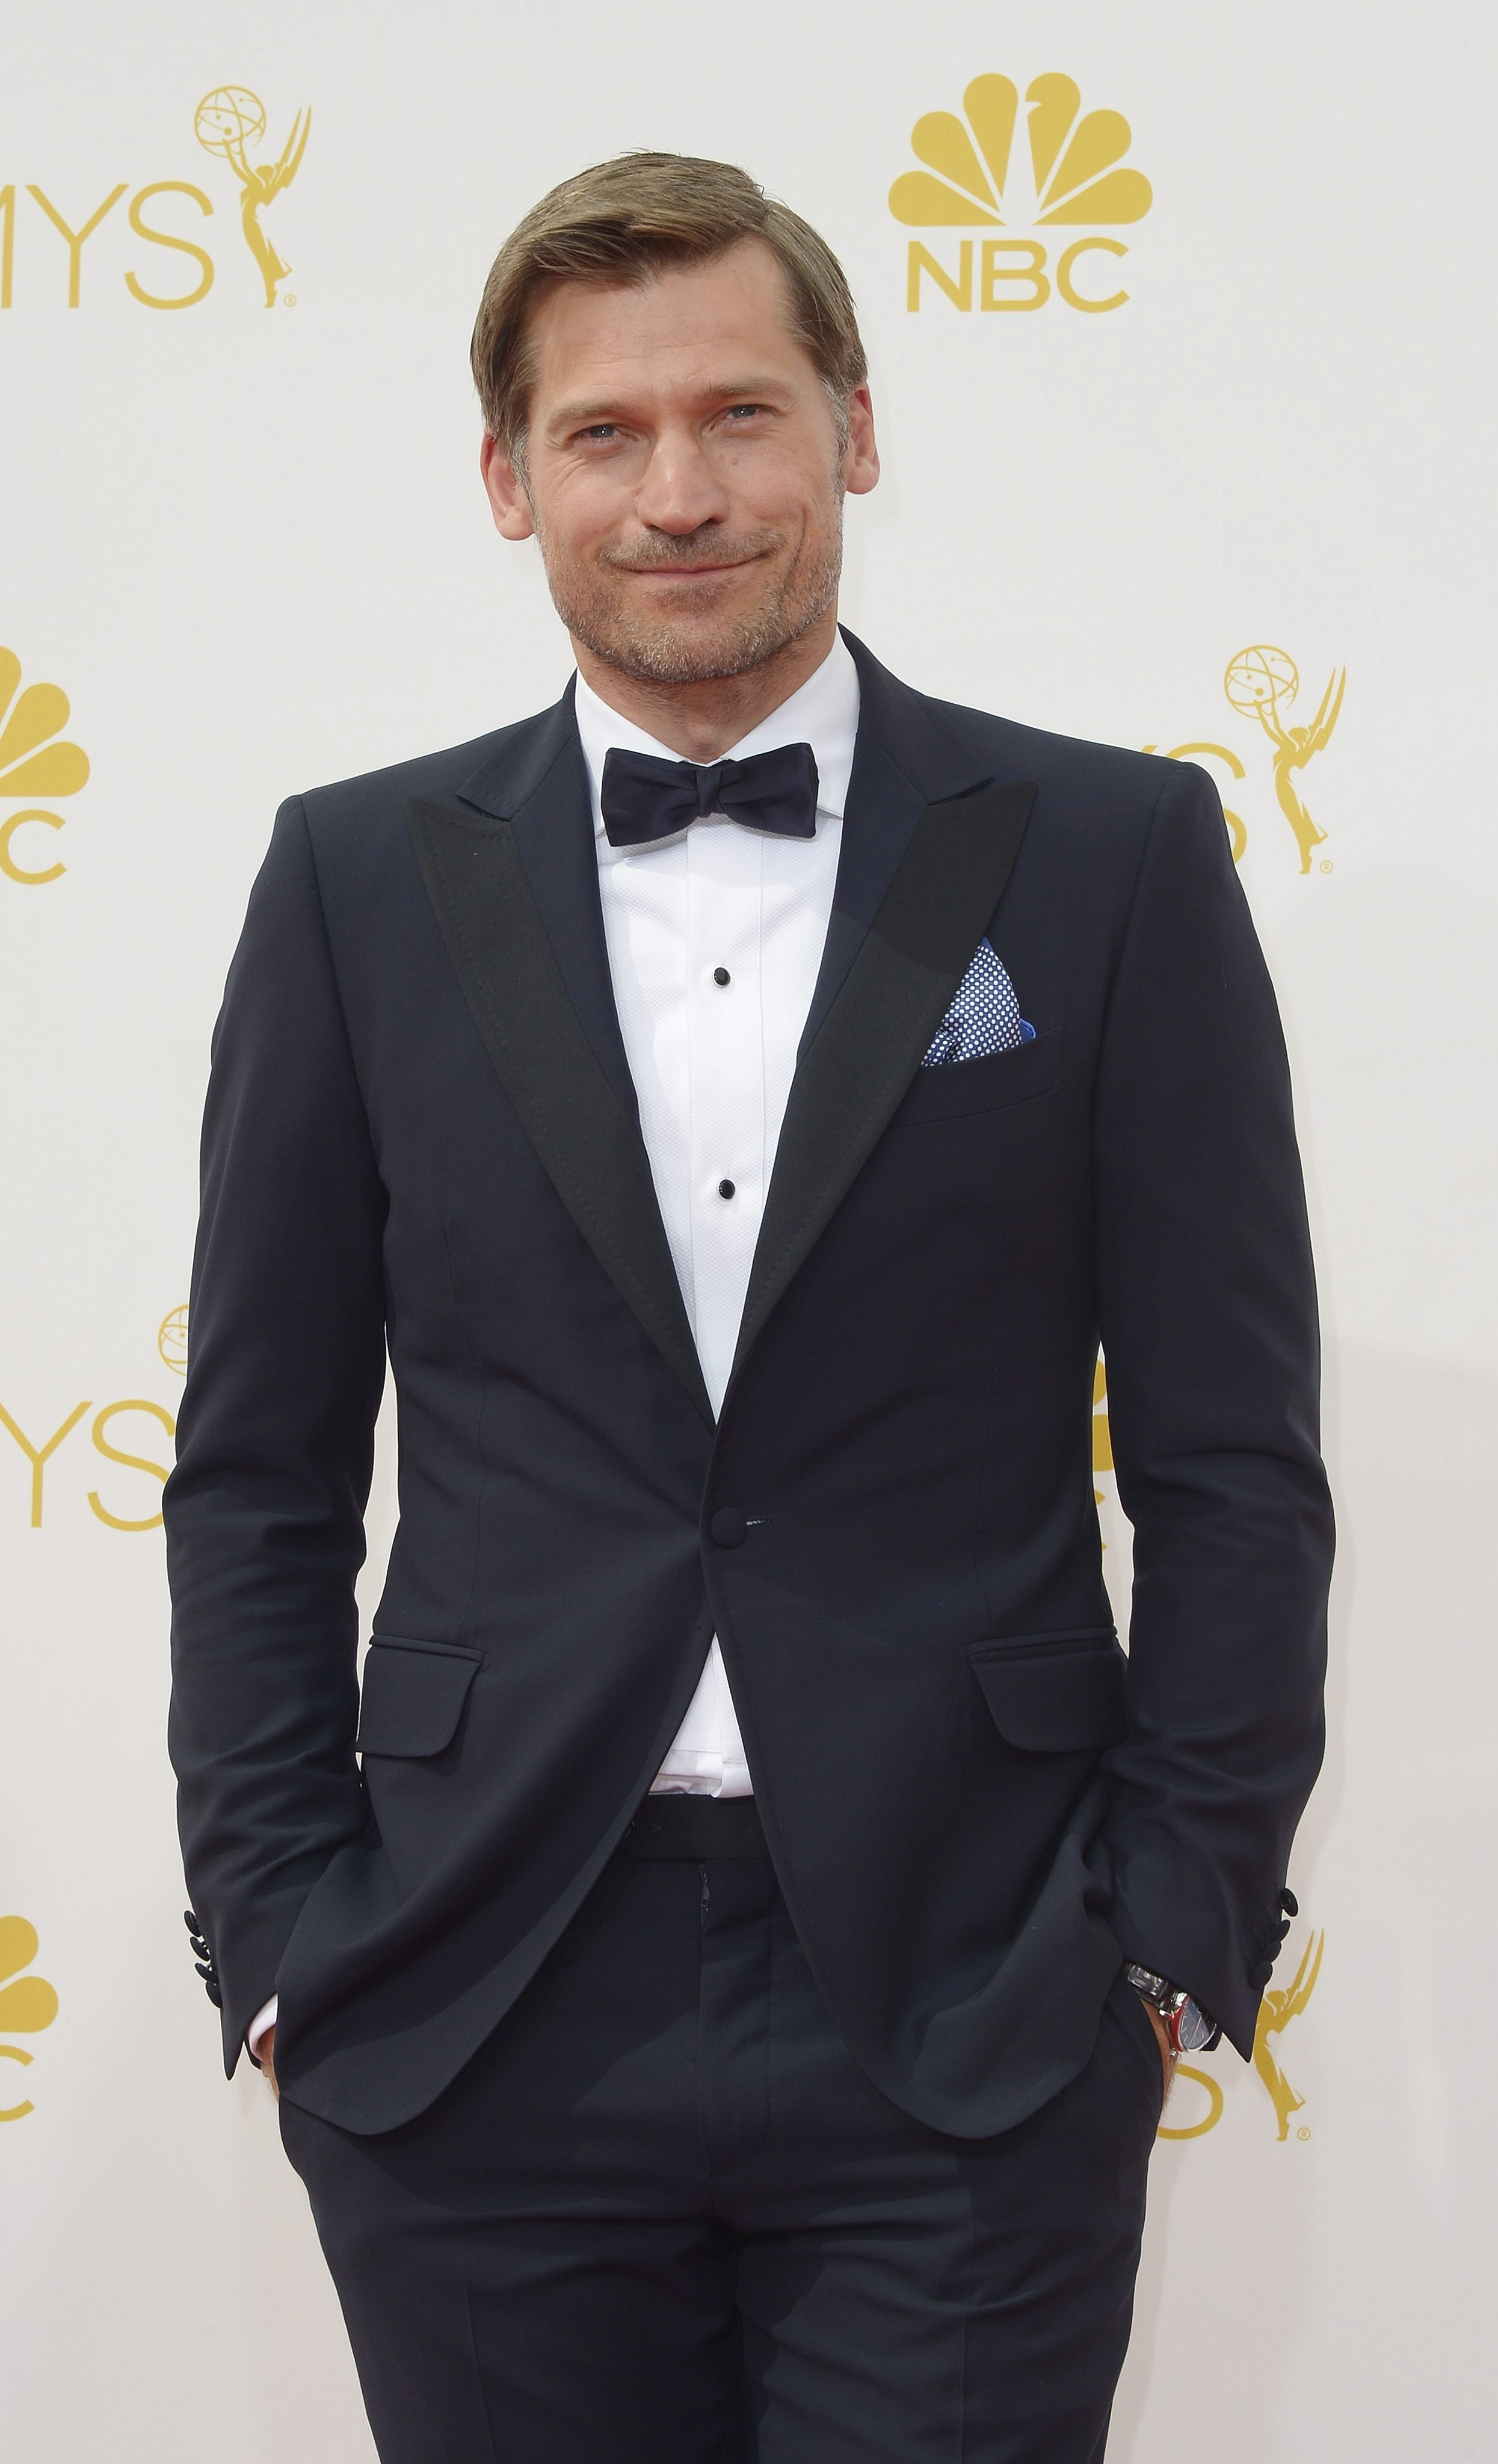 Nikolaj Coster-Waldau arrives for the 66th annual Primetime Emmy Awards held at the Nokia Theatre in Los Angeles, California, USA, August 25, 2014.